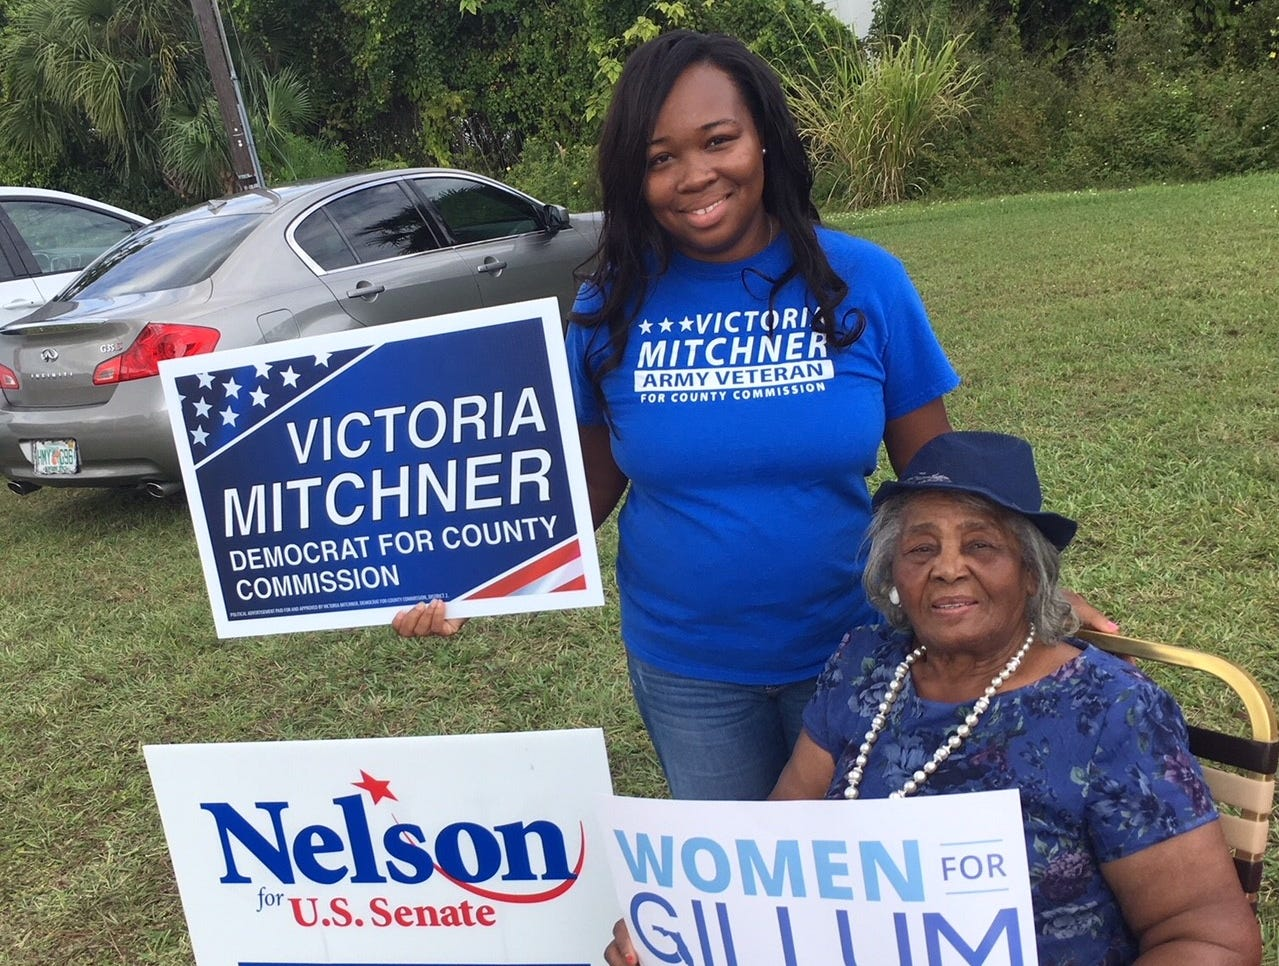 Victoria Mitchner campaigning at Hope United Church of Christ in Rockledge  With Jewel Collins.